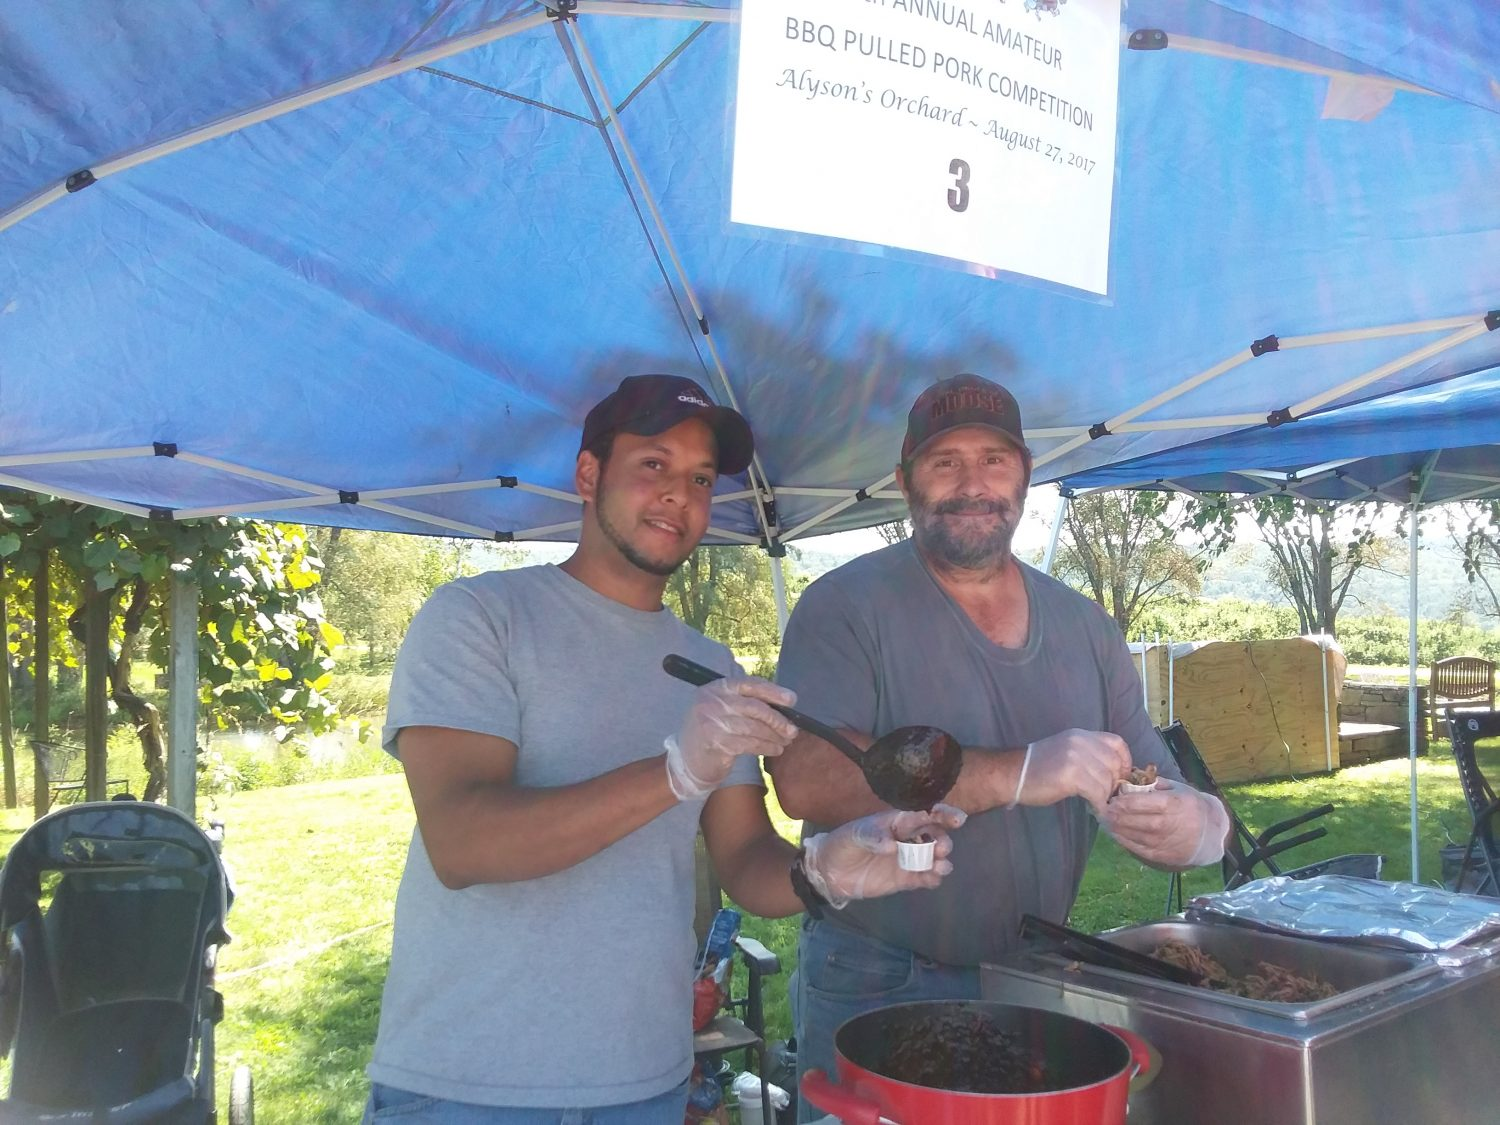 6th Annual Amateur Pulled Pork BBQ Competition